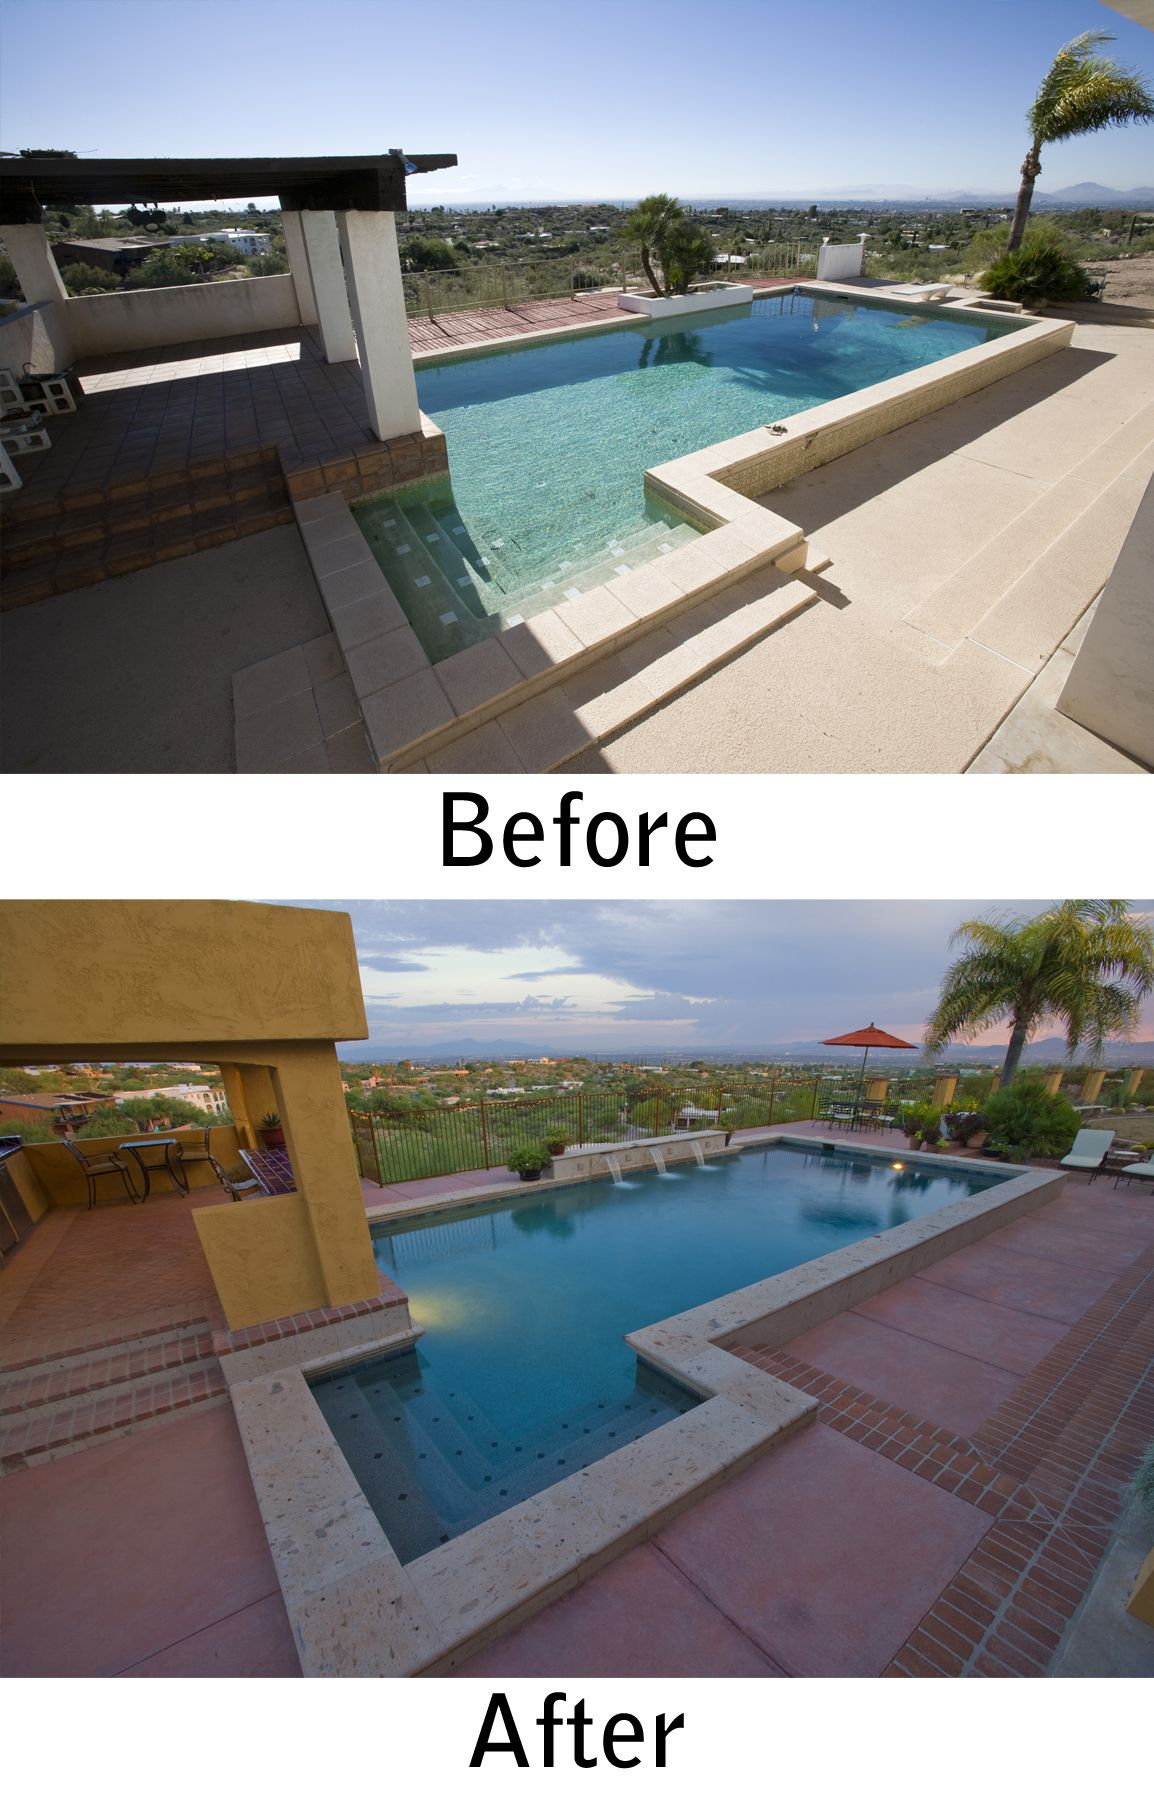 Tucson Pool Renovation by Patio Pools and Spas. & Tucson Pool Renovation by Patio Pools and Spas. | Tucson Pool ...